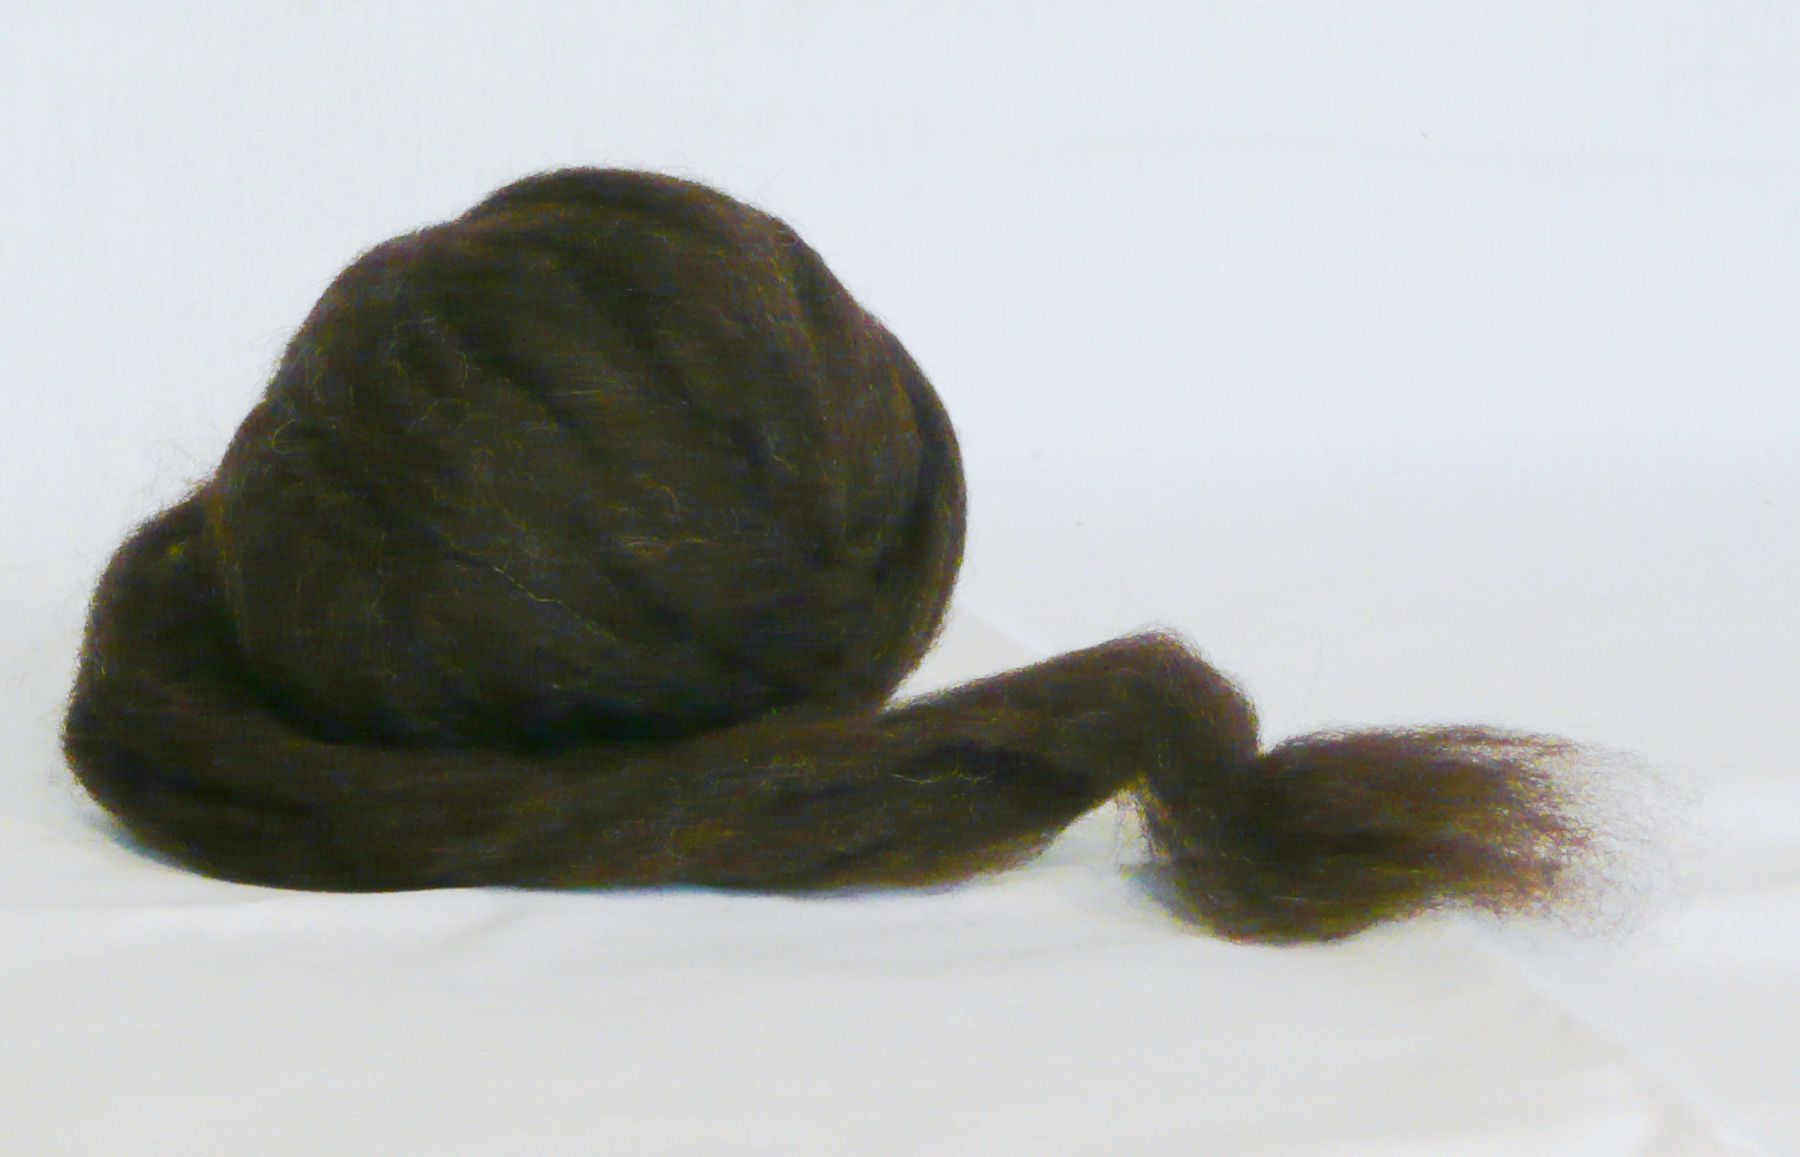 Natural brown sheep wool roving ready to be spun into yarn on a drop spindle.